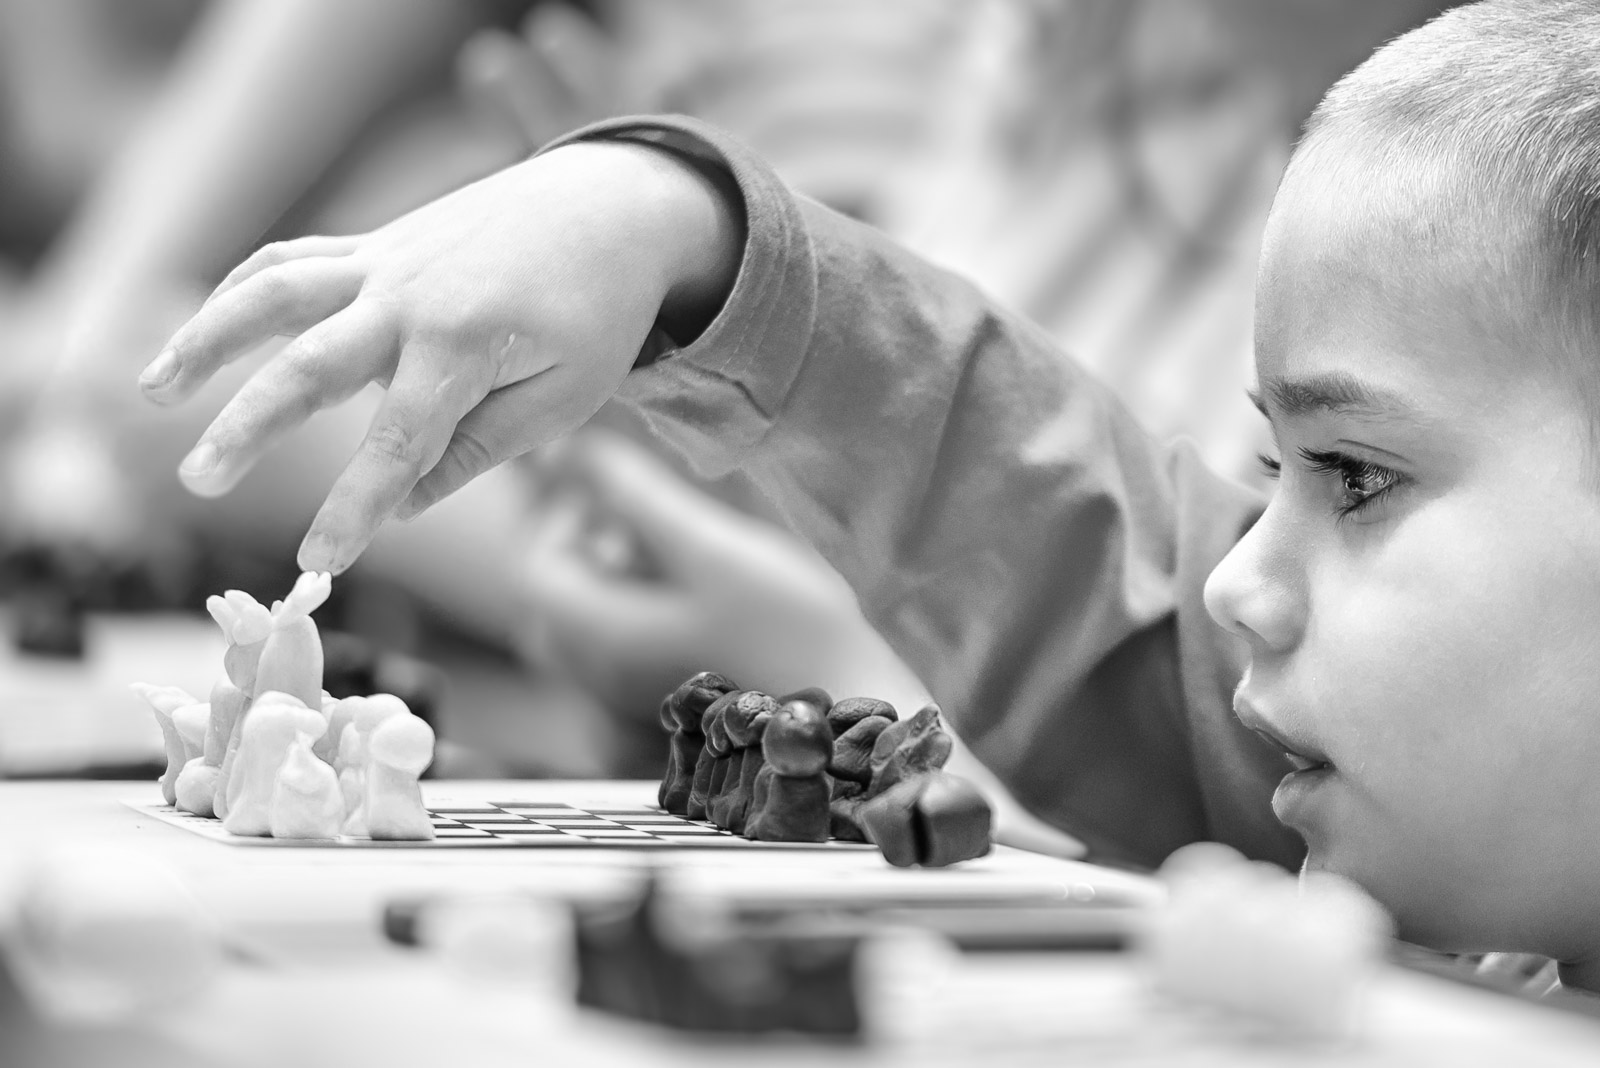 Marzipan chess pieces with boy